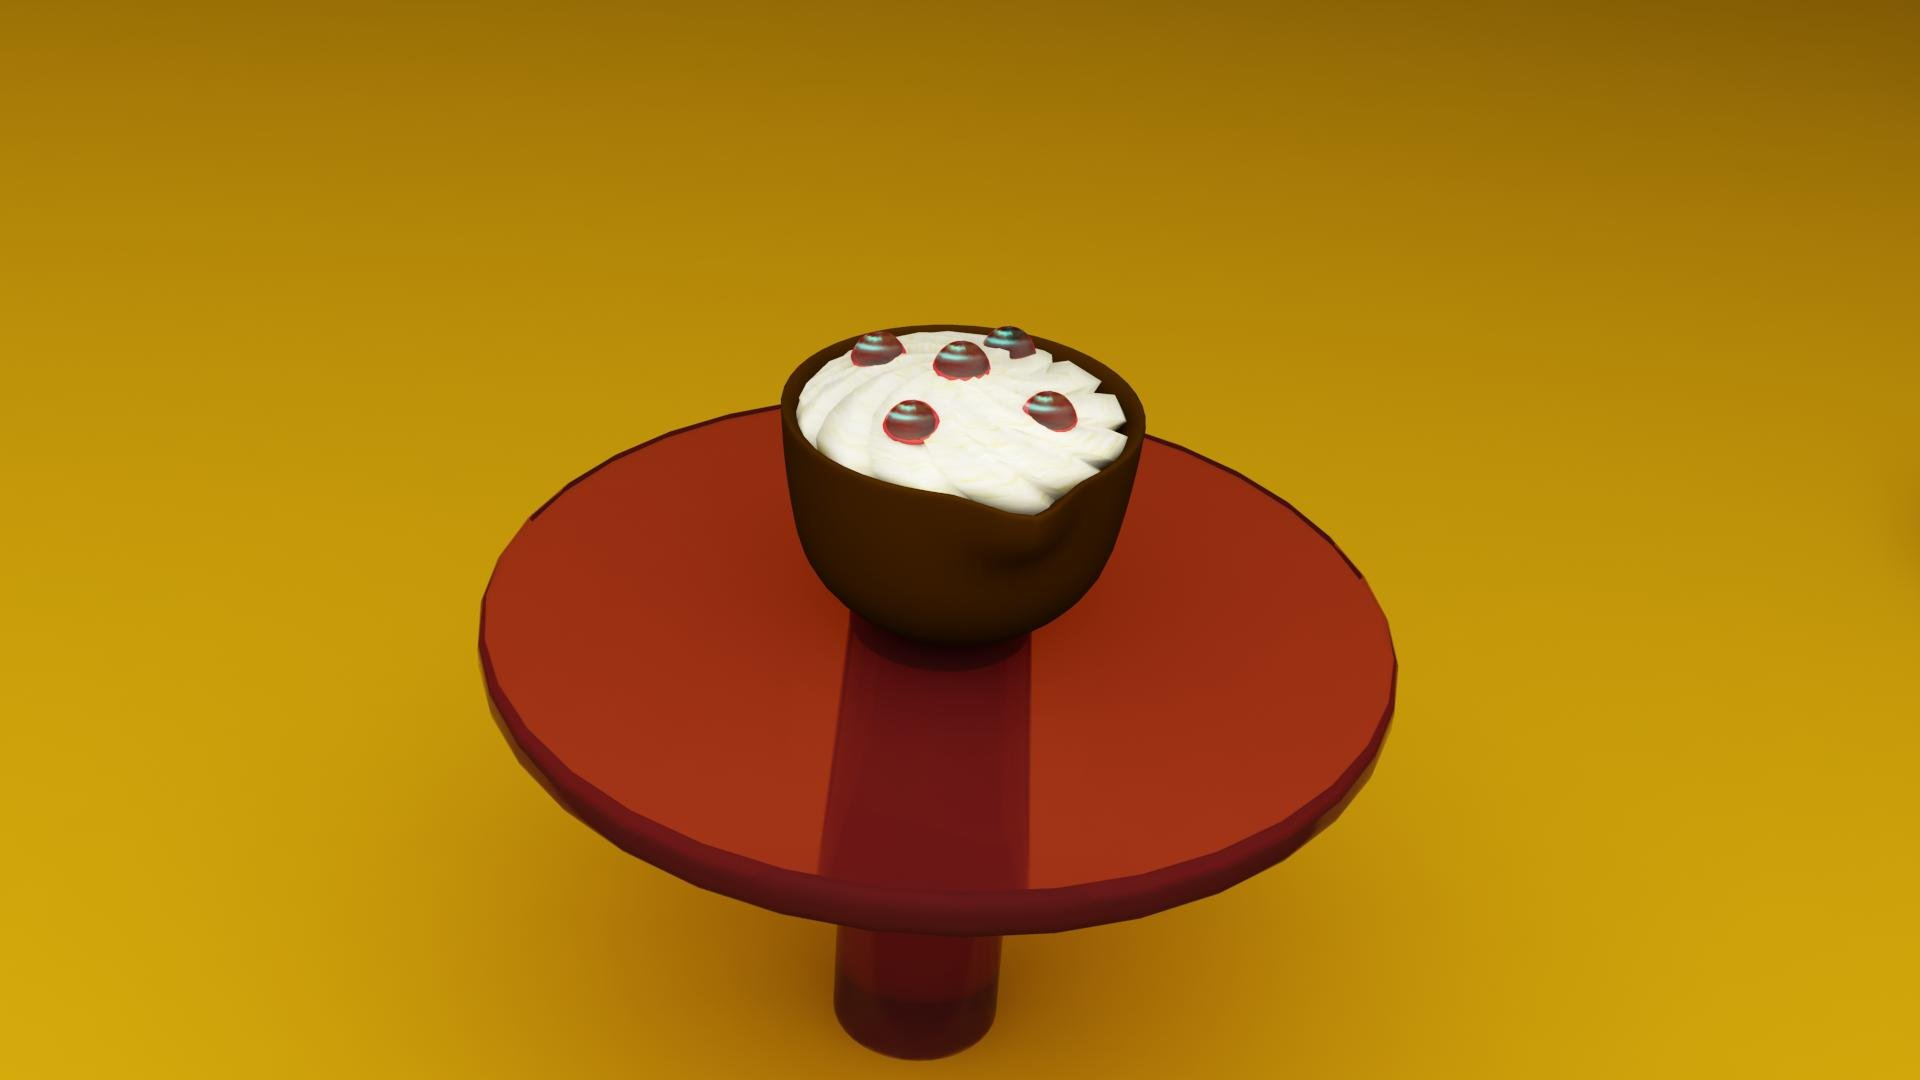 Creasweet chocolate cup filled with marshmallow or cheese and jelly